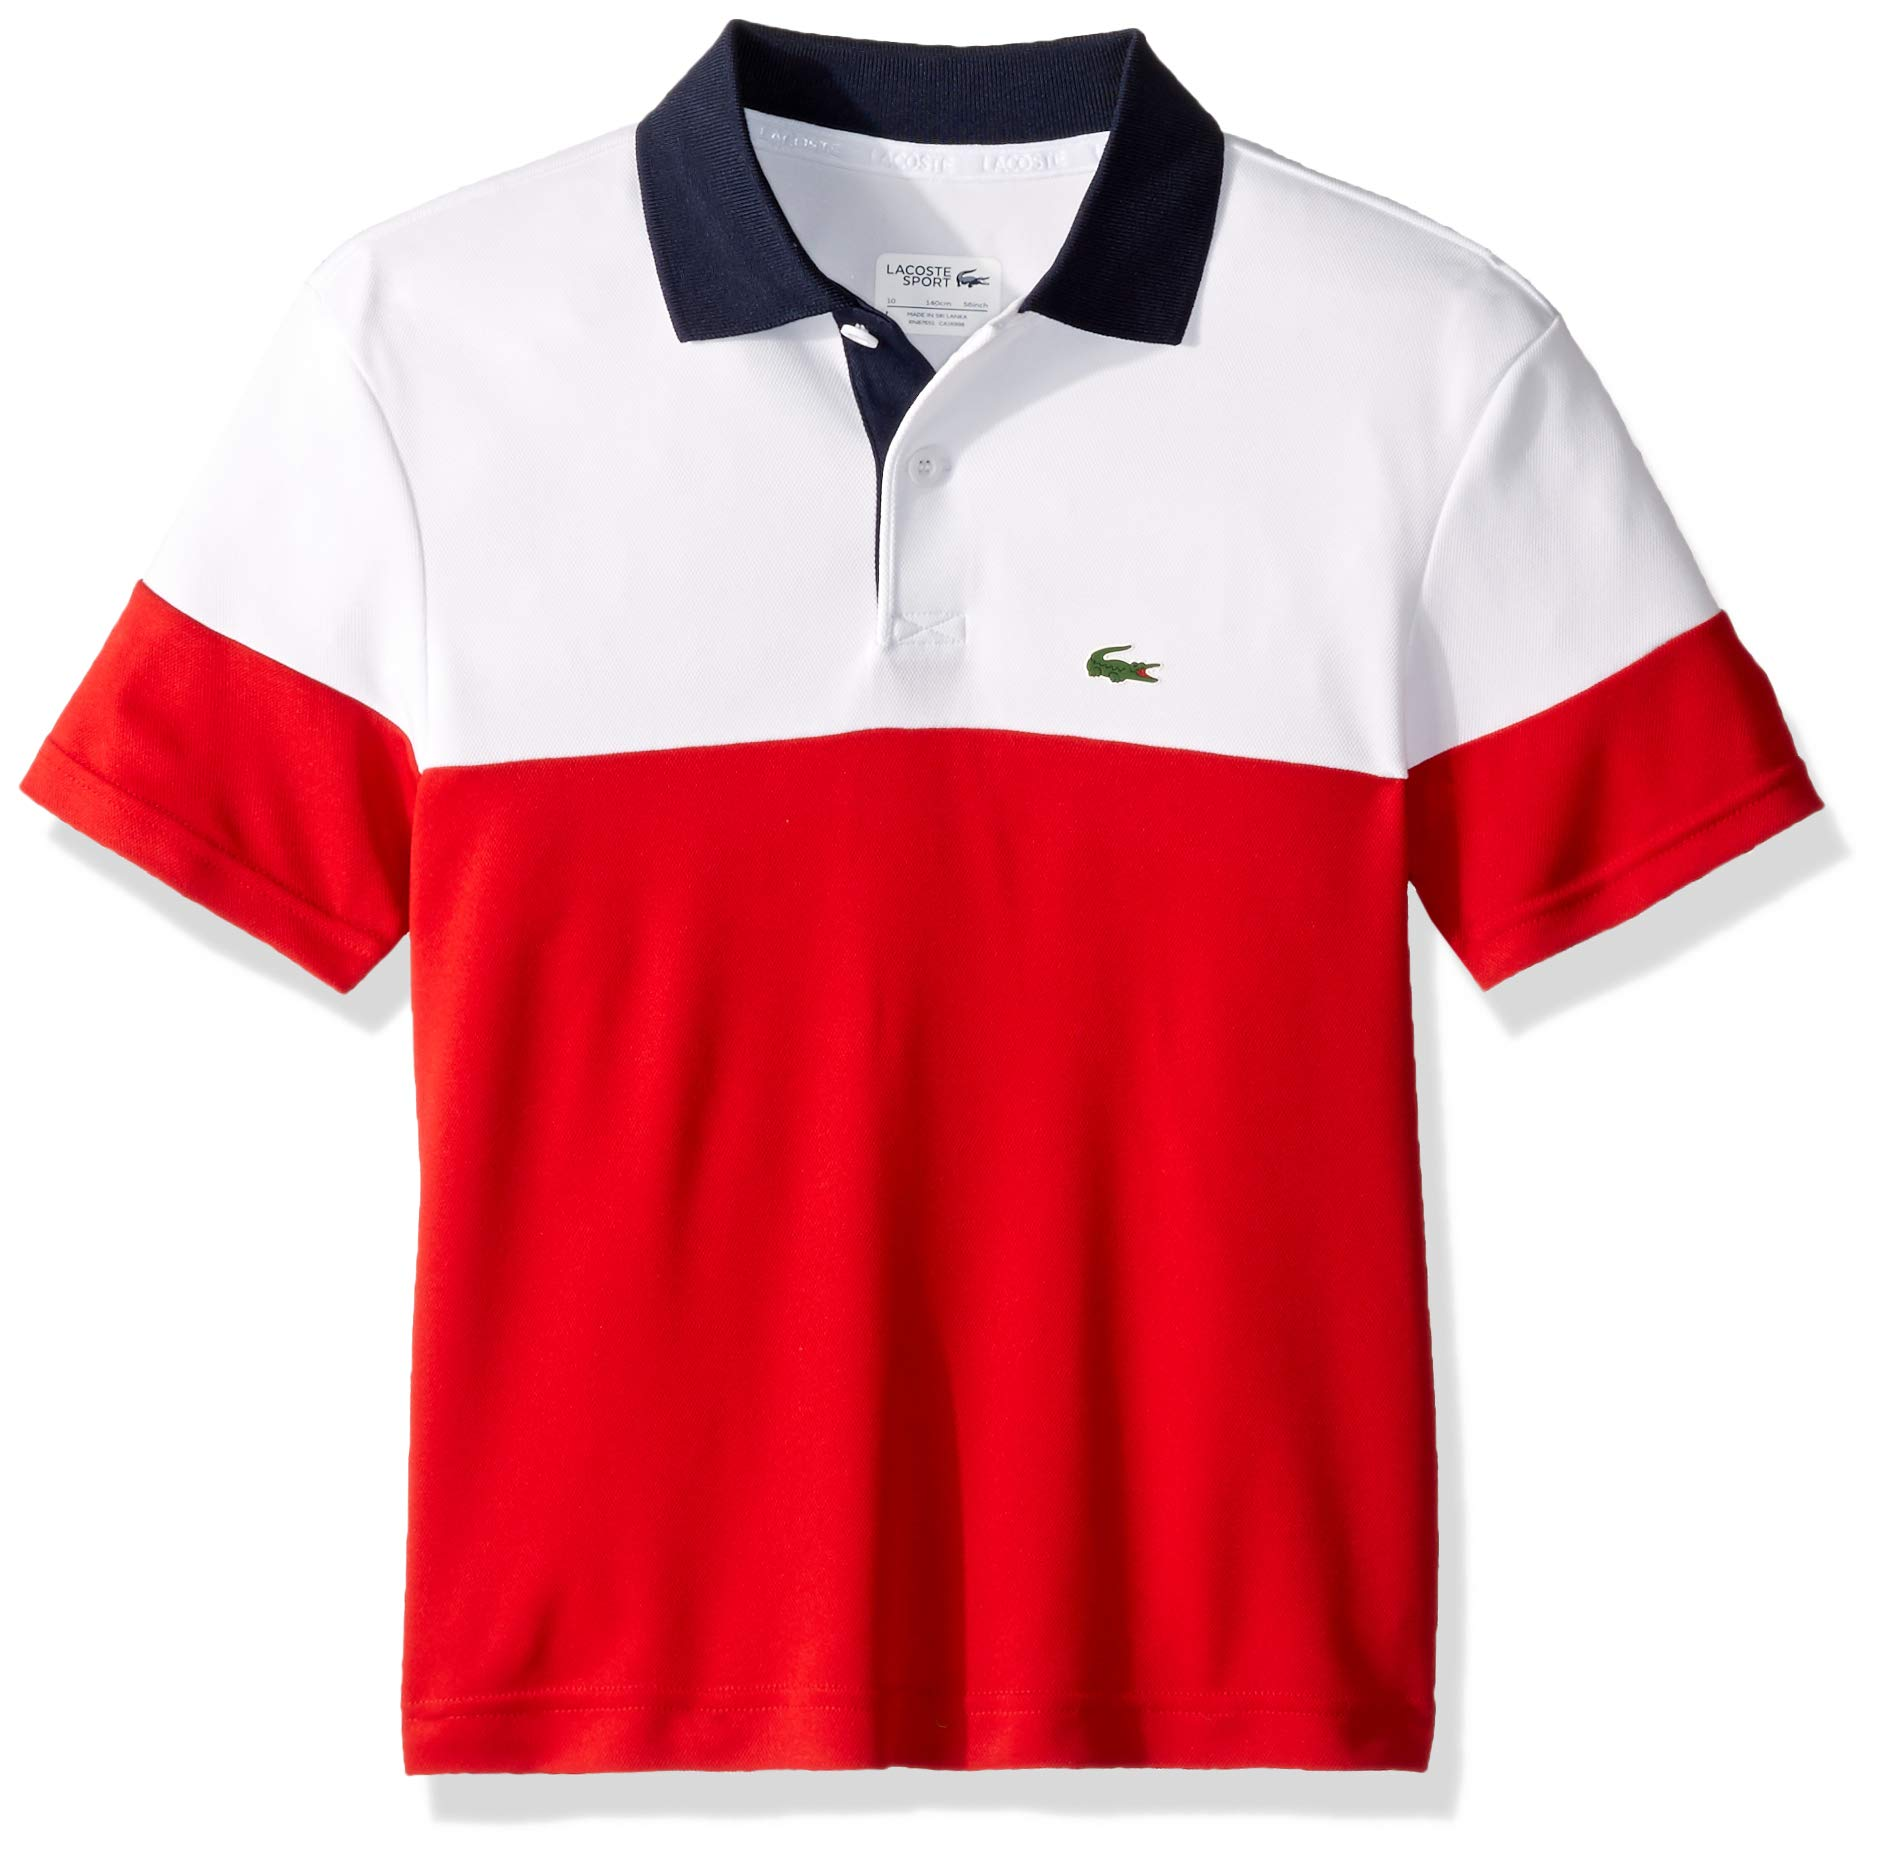 Lacoste Big BOY Poly Color Block Polo, White/red/Navy Blue, 16YR